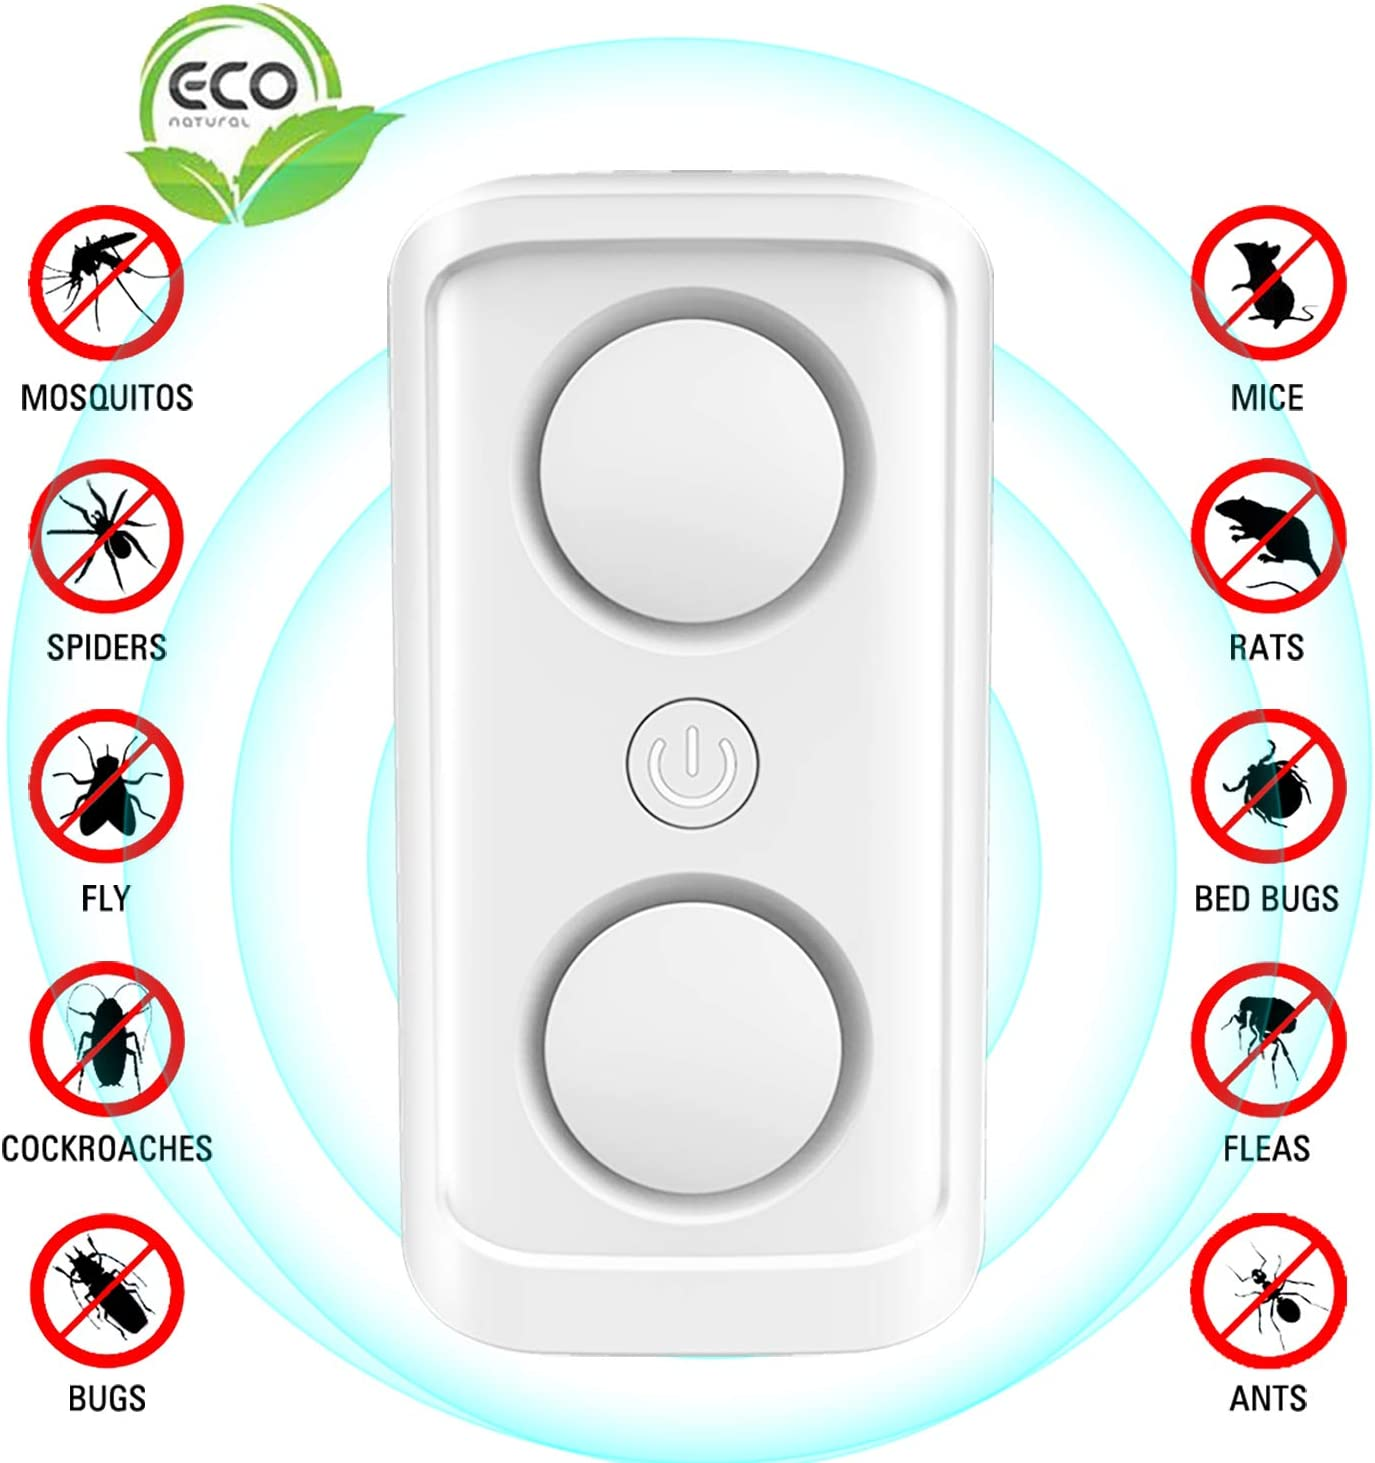 Spiders ERACII Ultrasonic Pest Repeller Plug in Rats Powerful Sonic Repellent with AI Frequency Conversion Technology for Mouse Flies White Mosquito Mice Repellent /& Rat Deterrent Ants